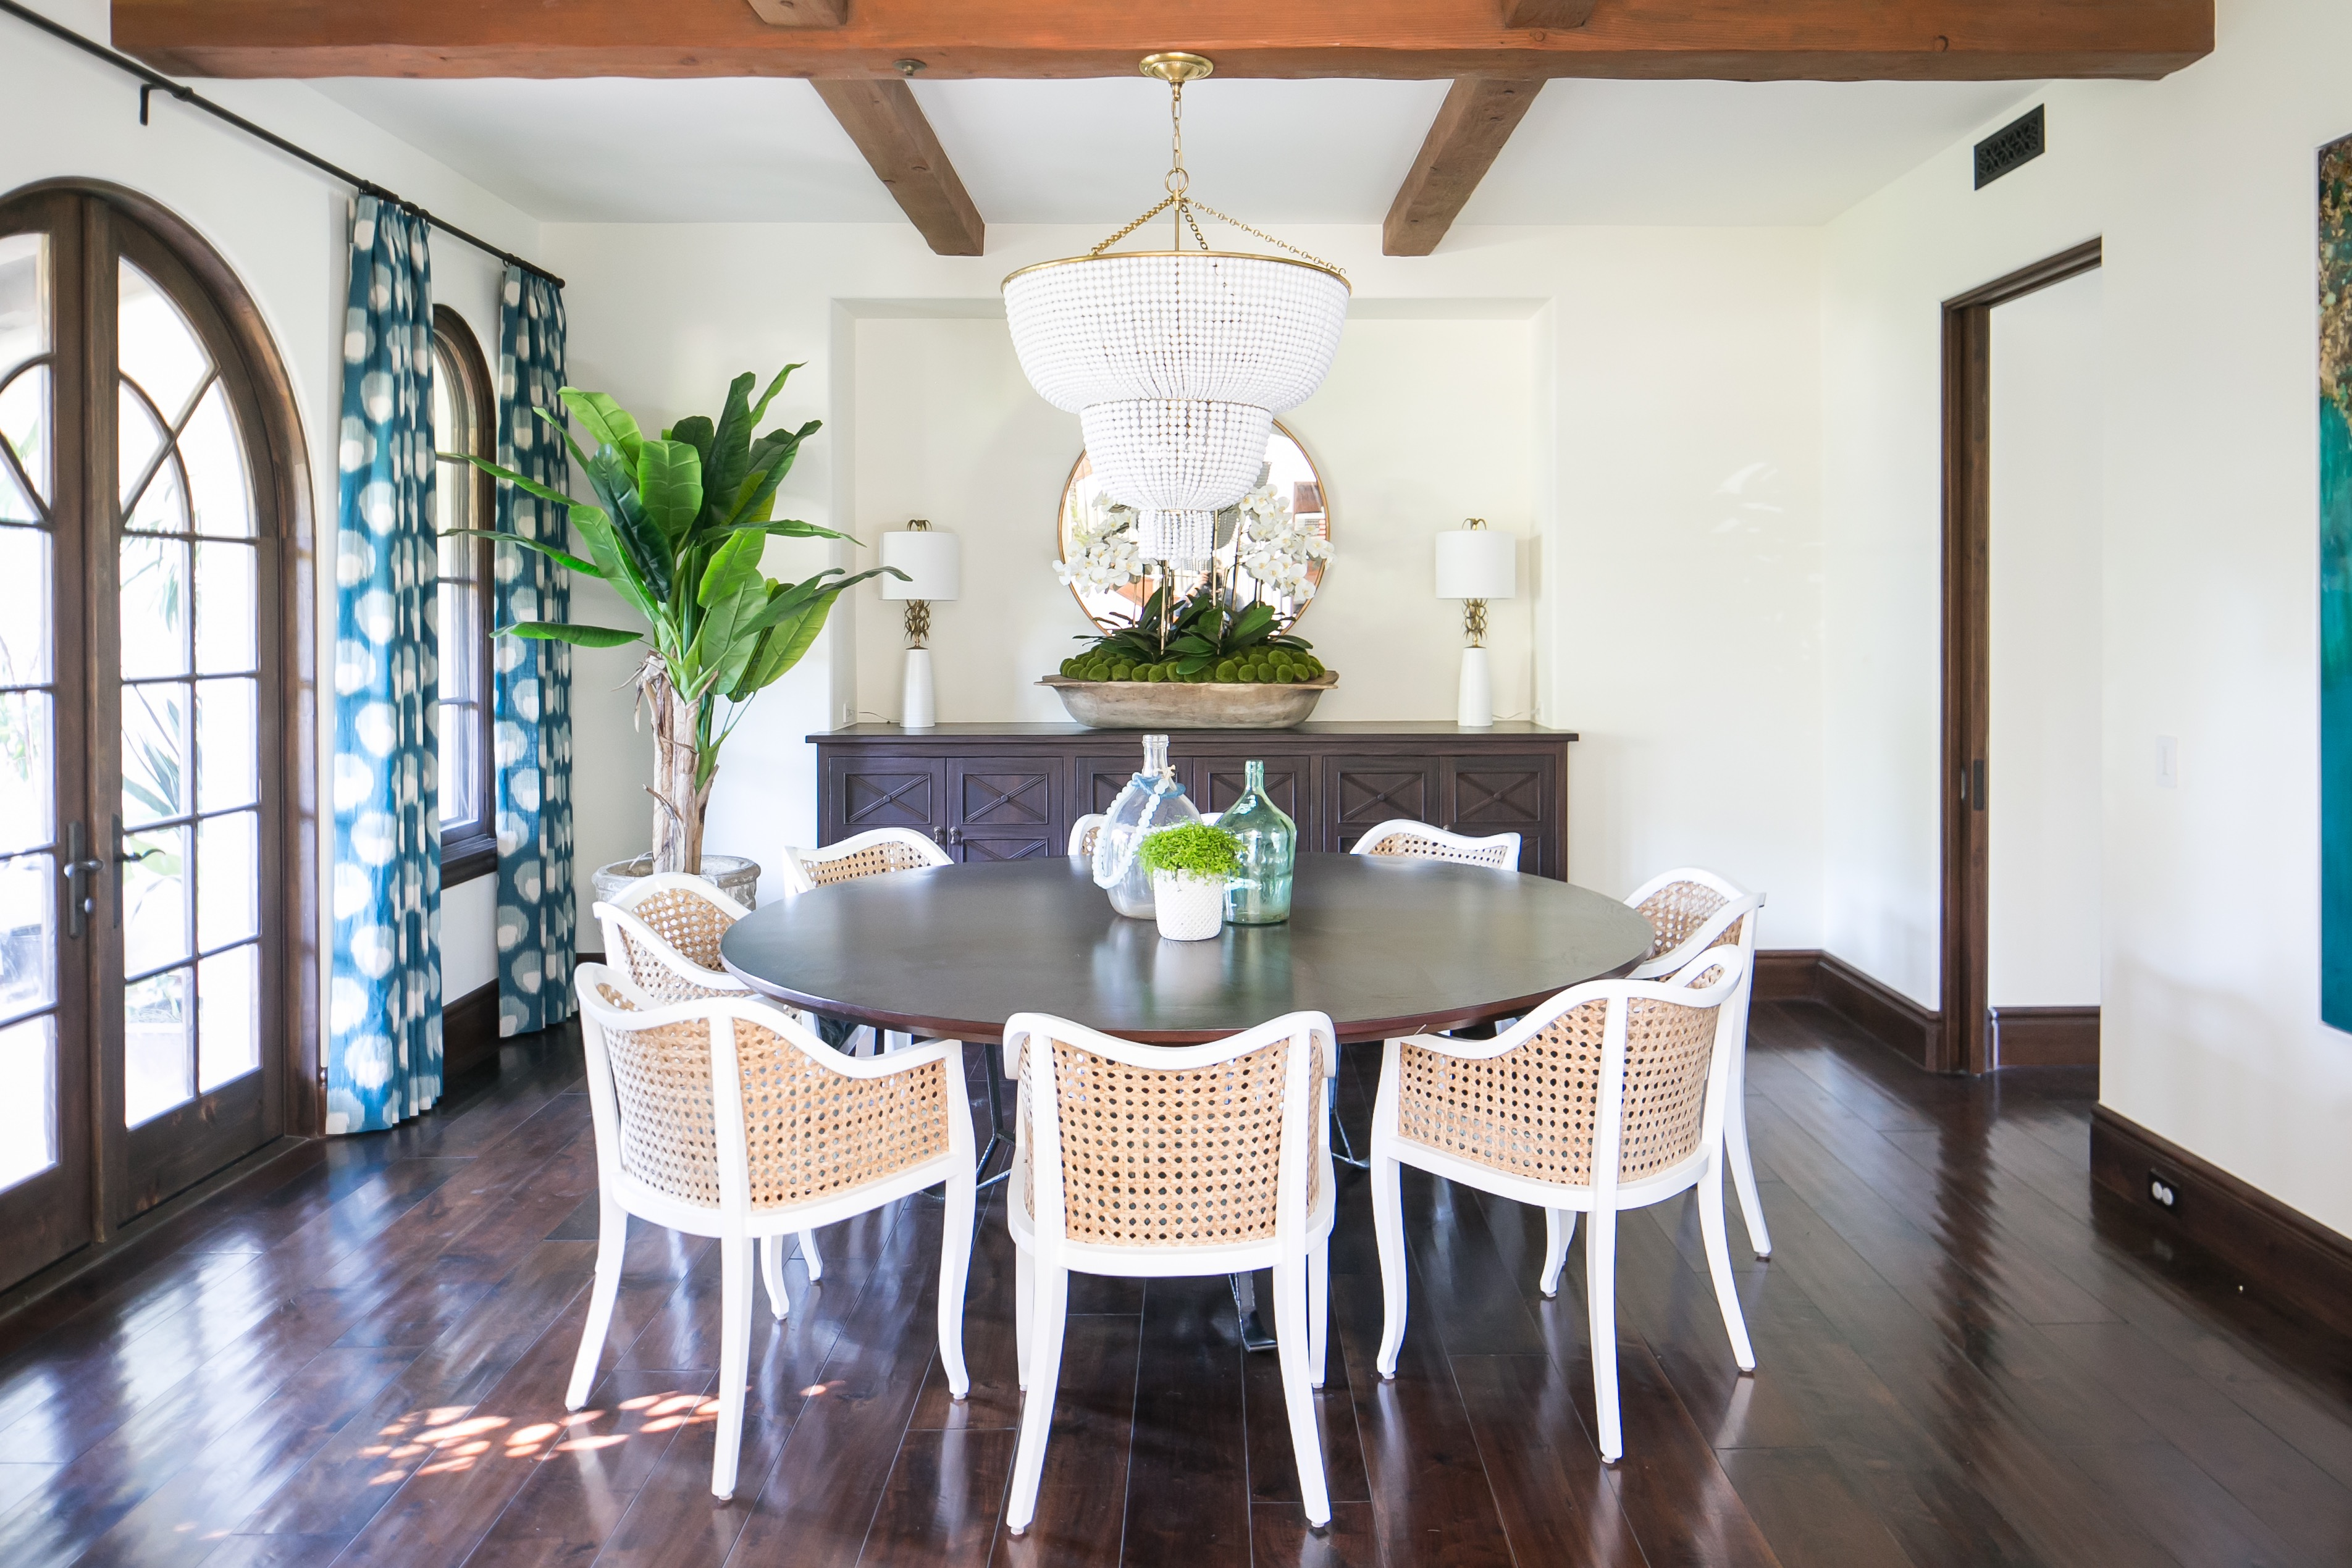 Modern Transitional Formal Dining Room With Round Dining Table Set With White Chairs